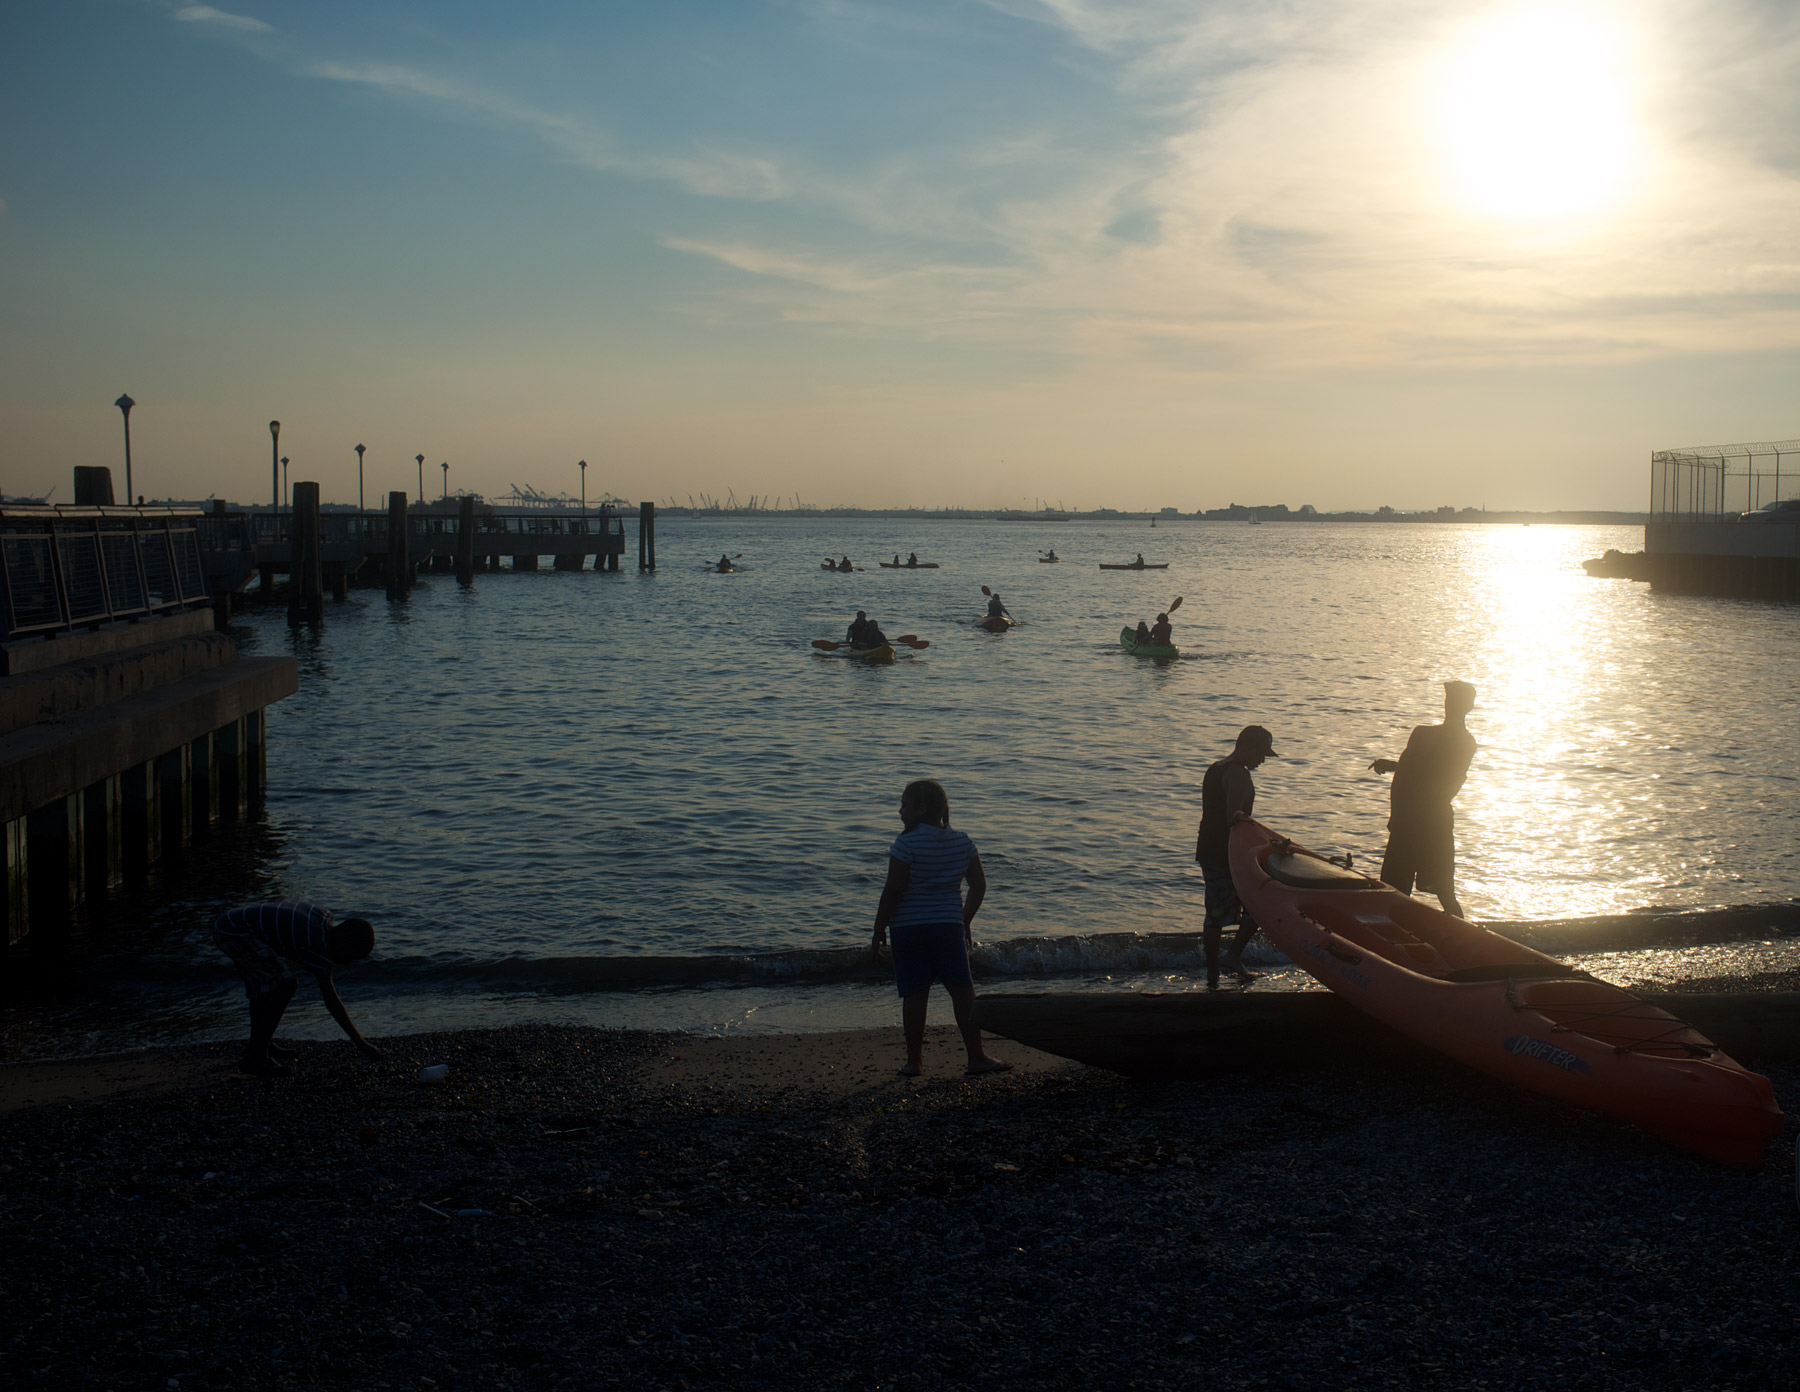 kayakers-at-red-hook-pier-at-sun-set.jpg